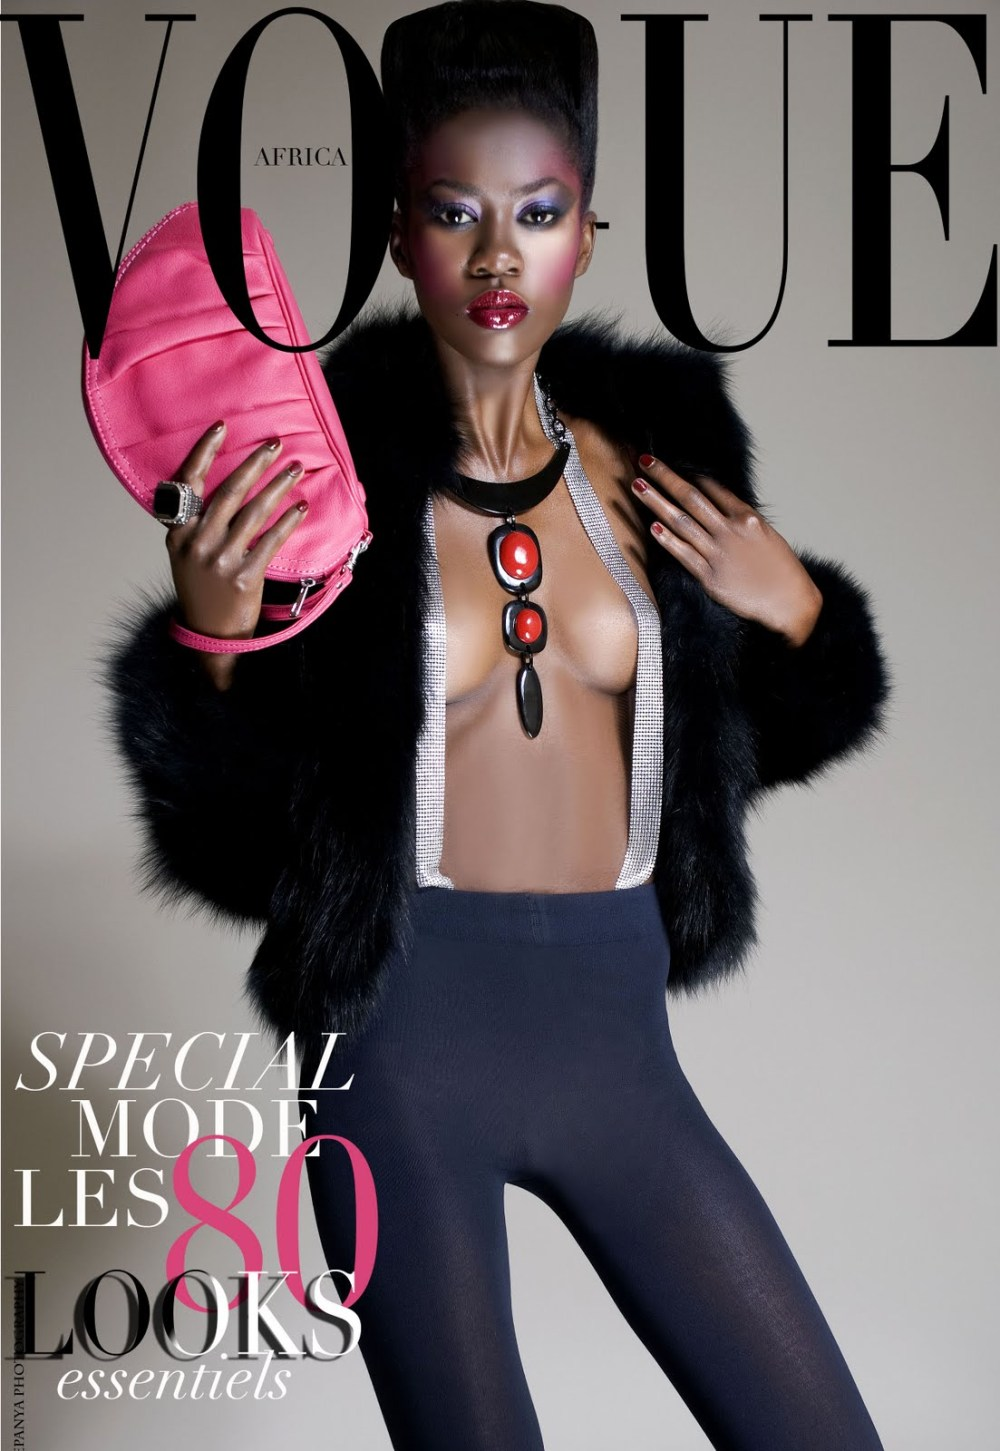 Should there be a Vogue Africa? Mario Epanya's bid to Condé Nast 2010 #AfricaSpeak #TDSvoices